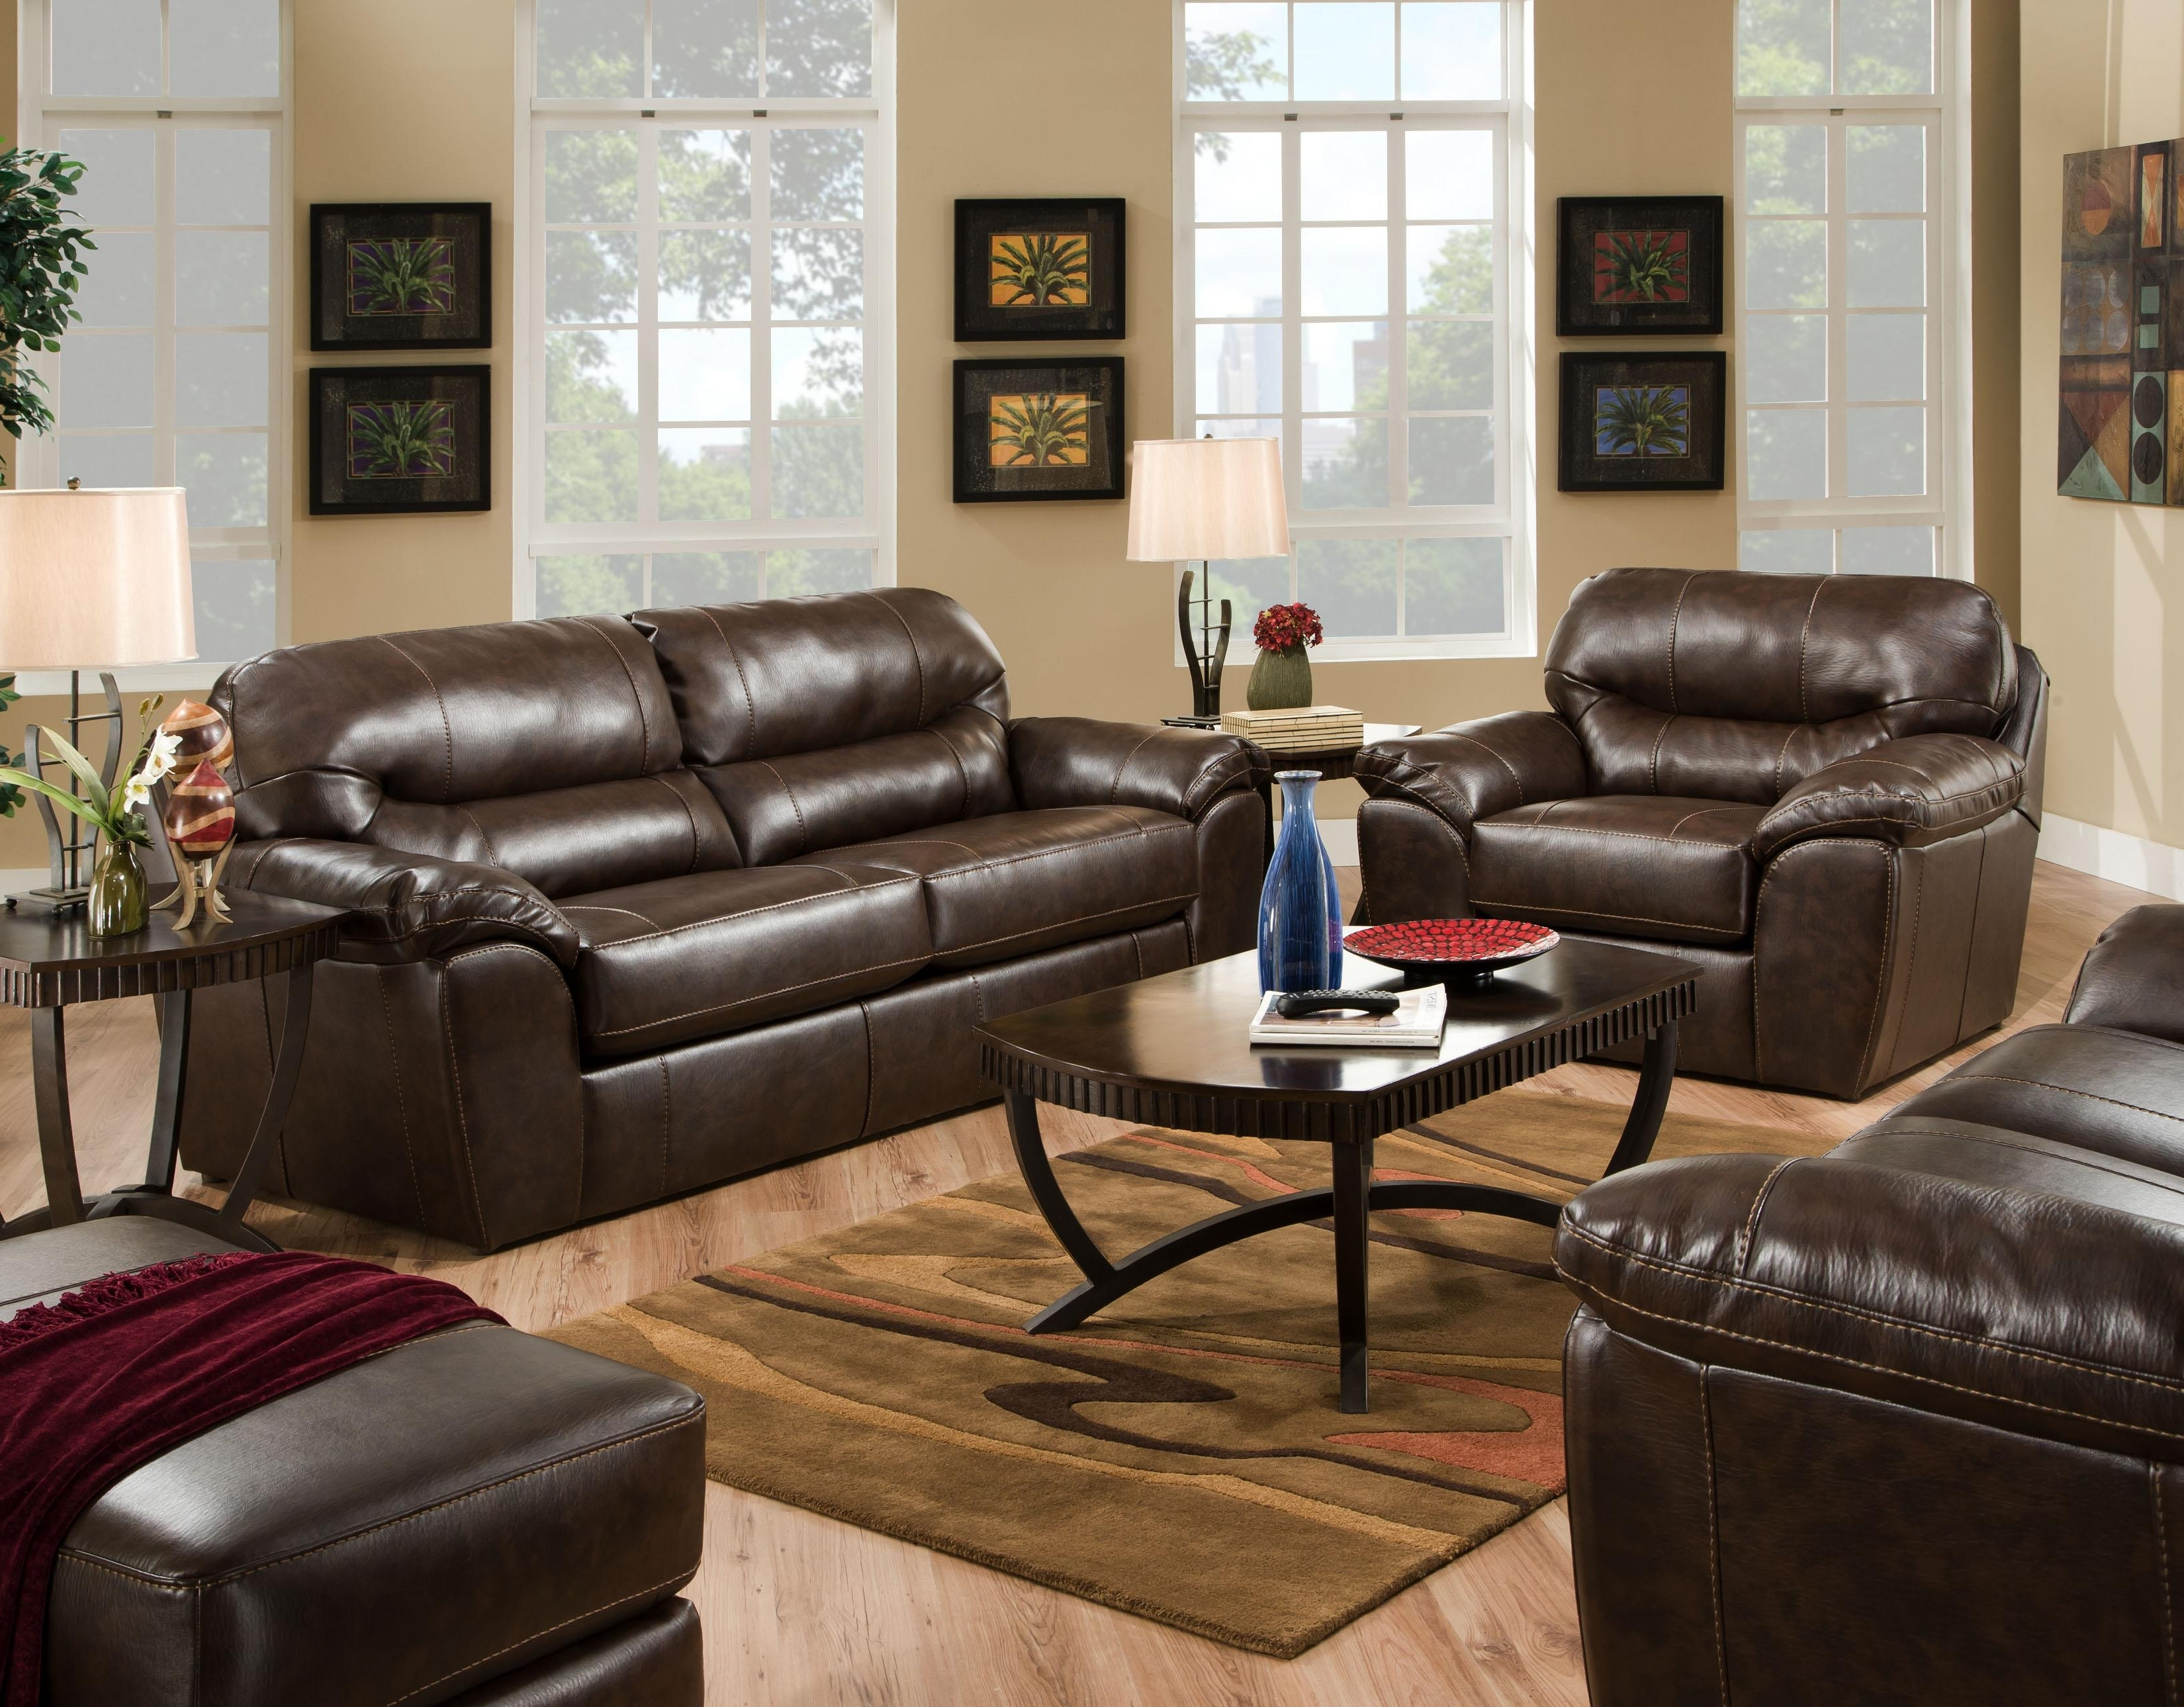 Favorite Casual And Comfortable Faux Leather Sofajackson Furniture For Casual Sofas And Chairs (View 15 of 20)